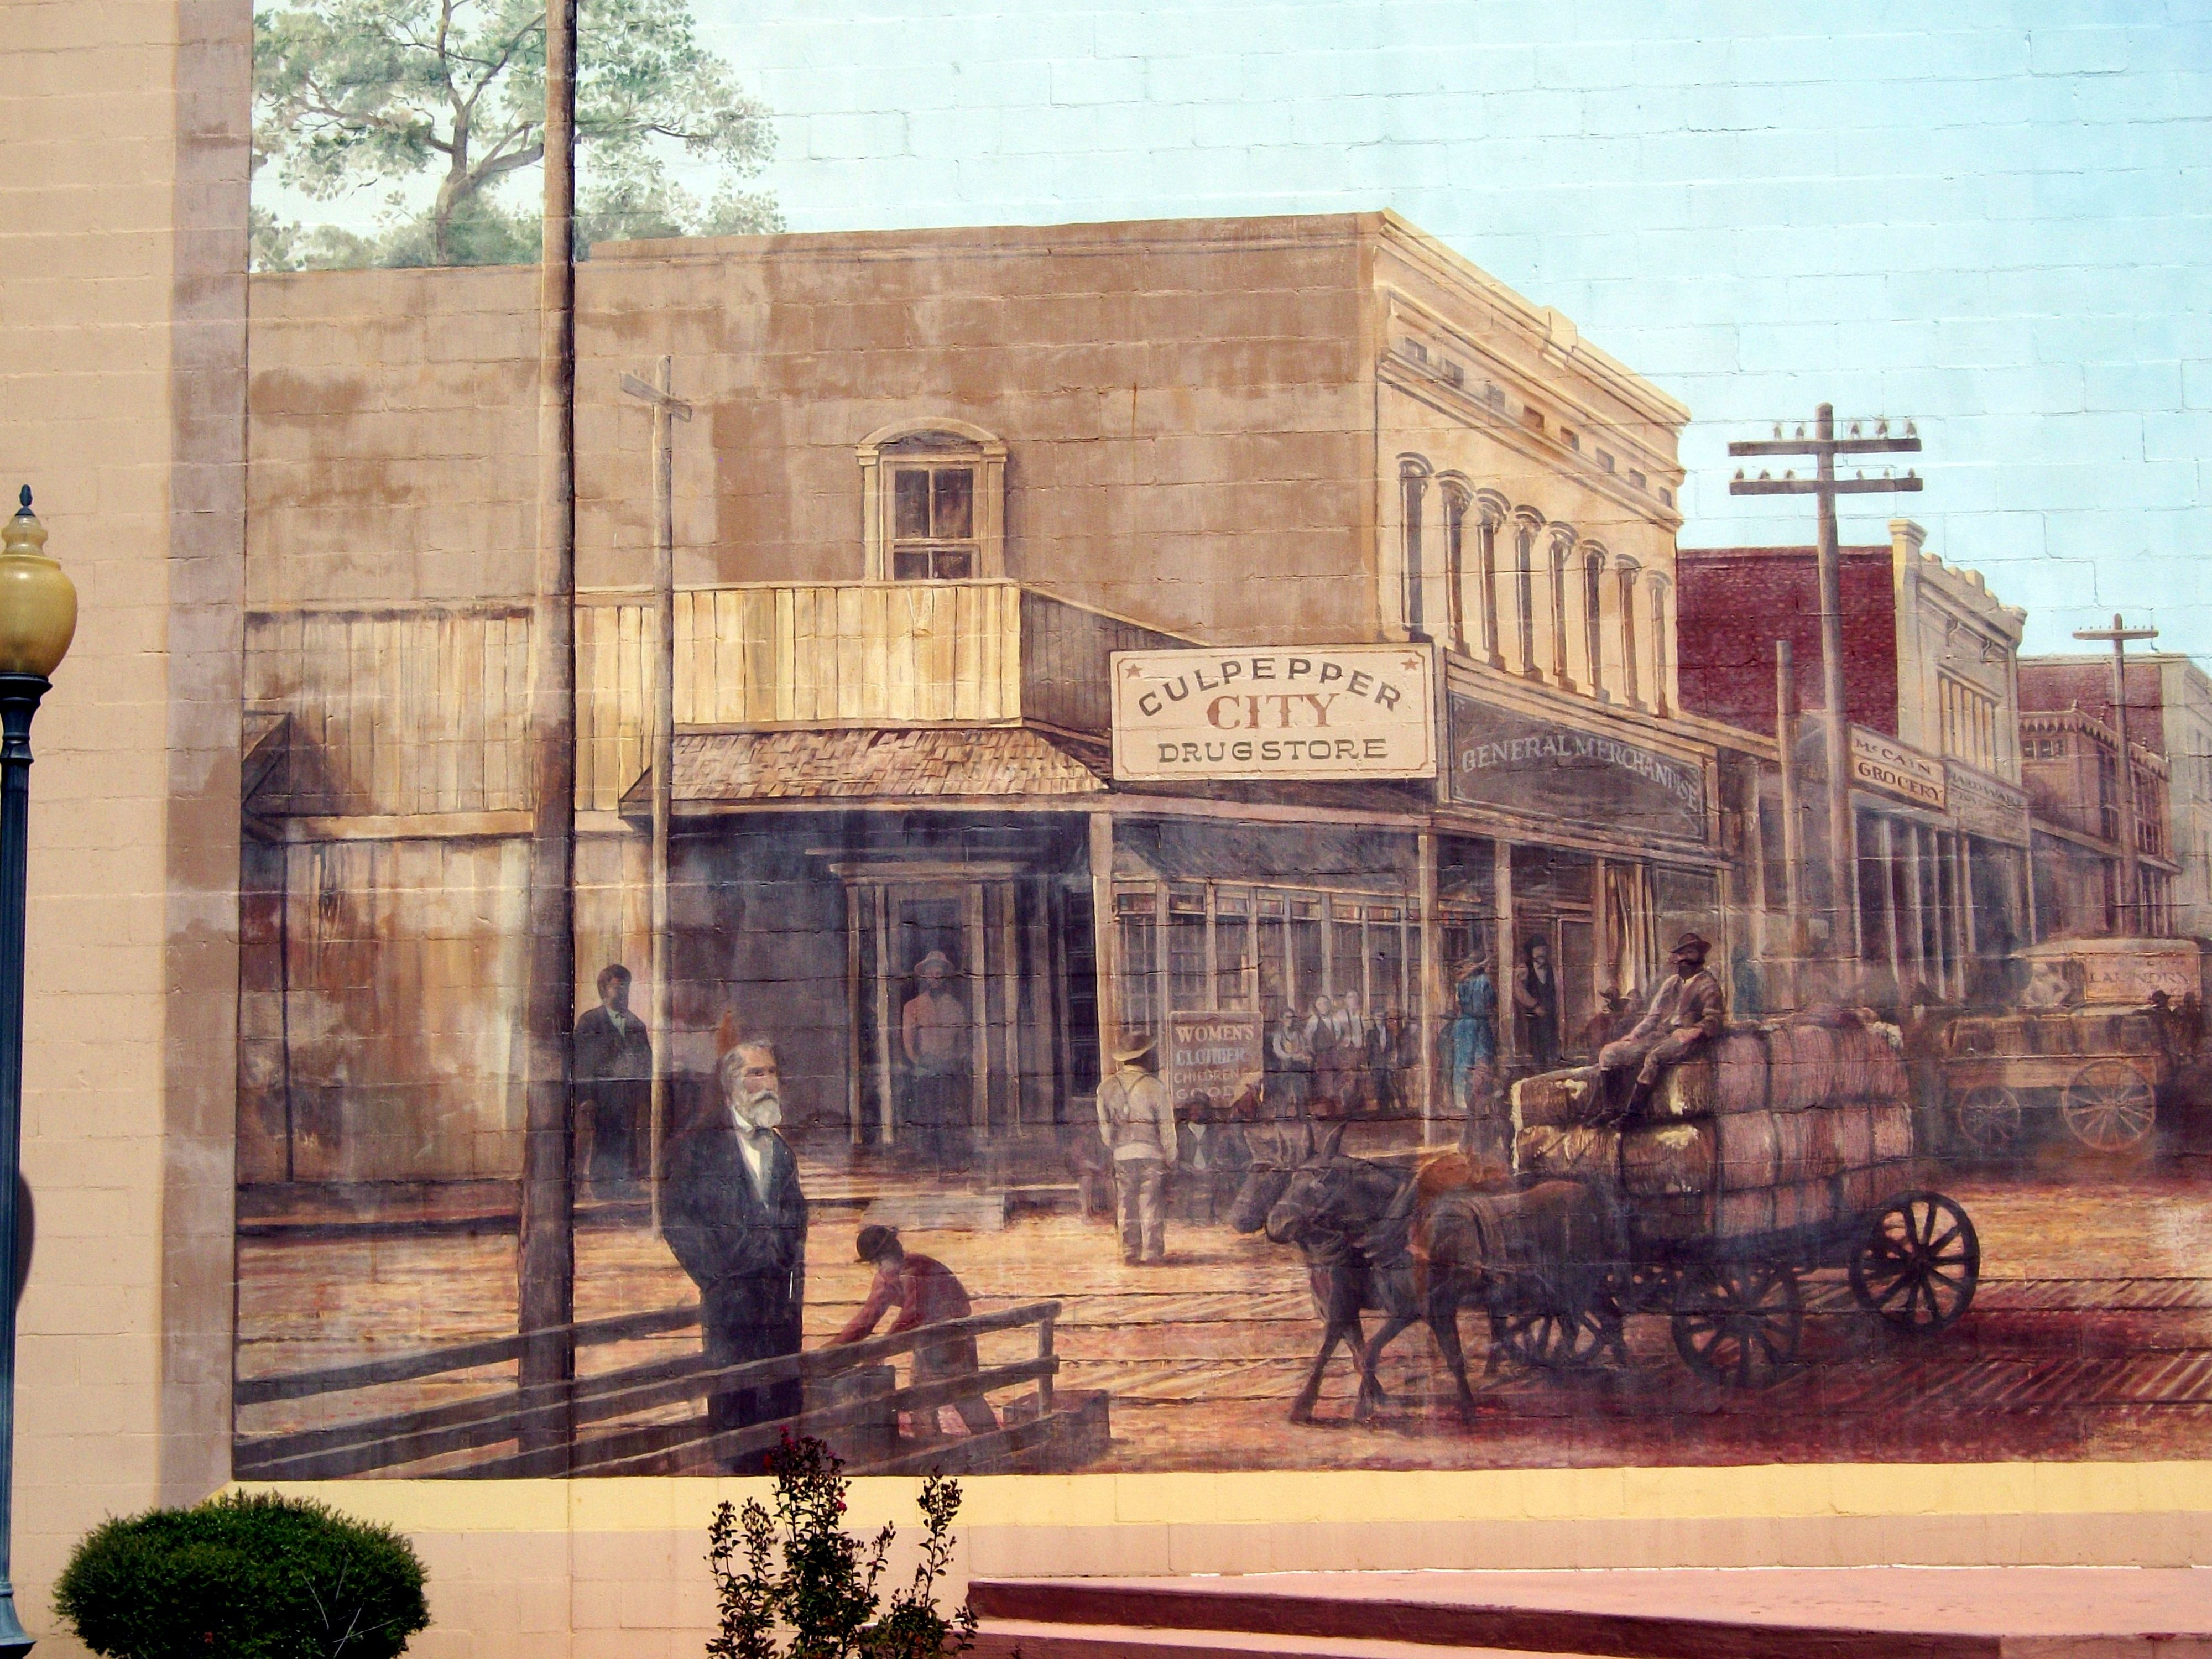 Mural on a wall in the historic downtown district of Pine Bluff, Jefferson Co., AR. My copyright.